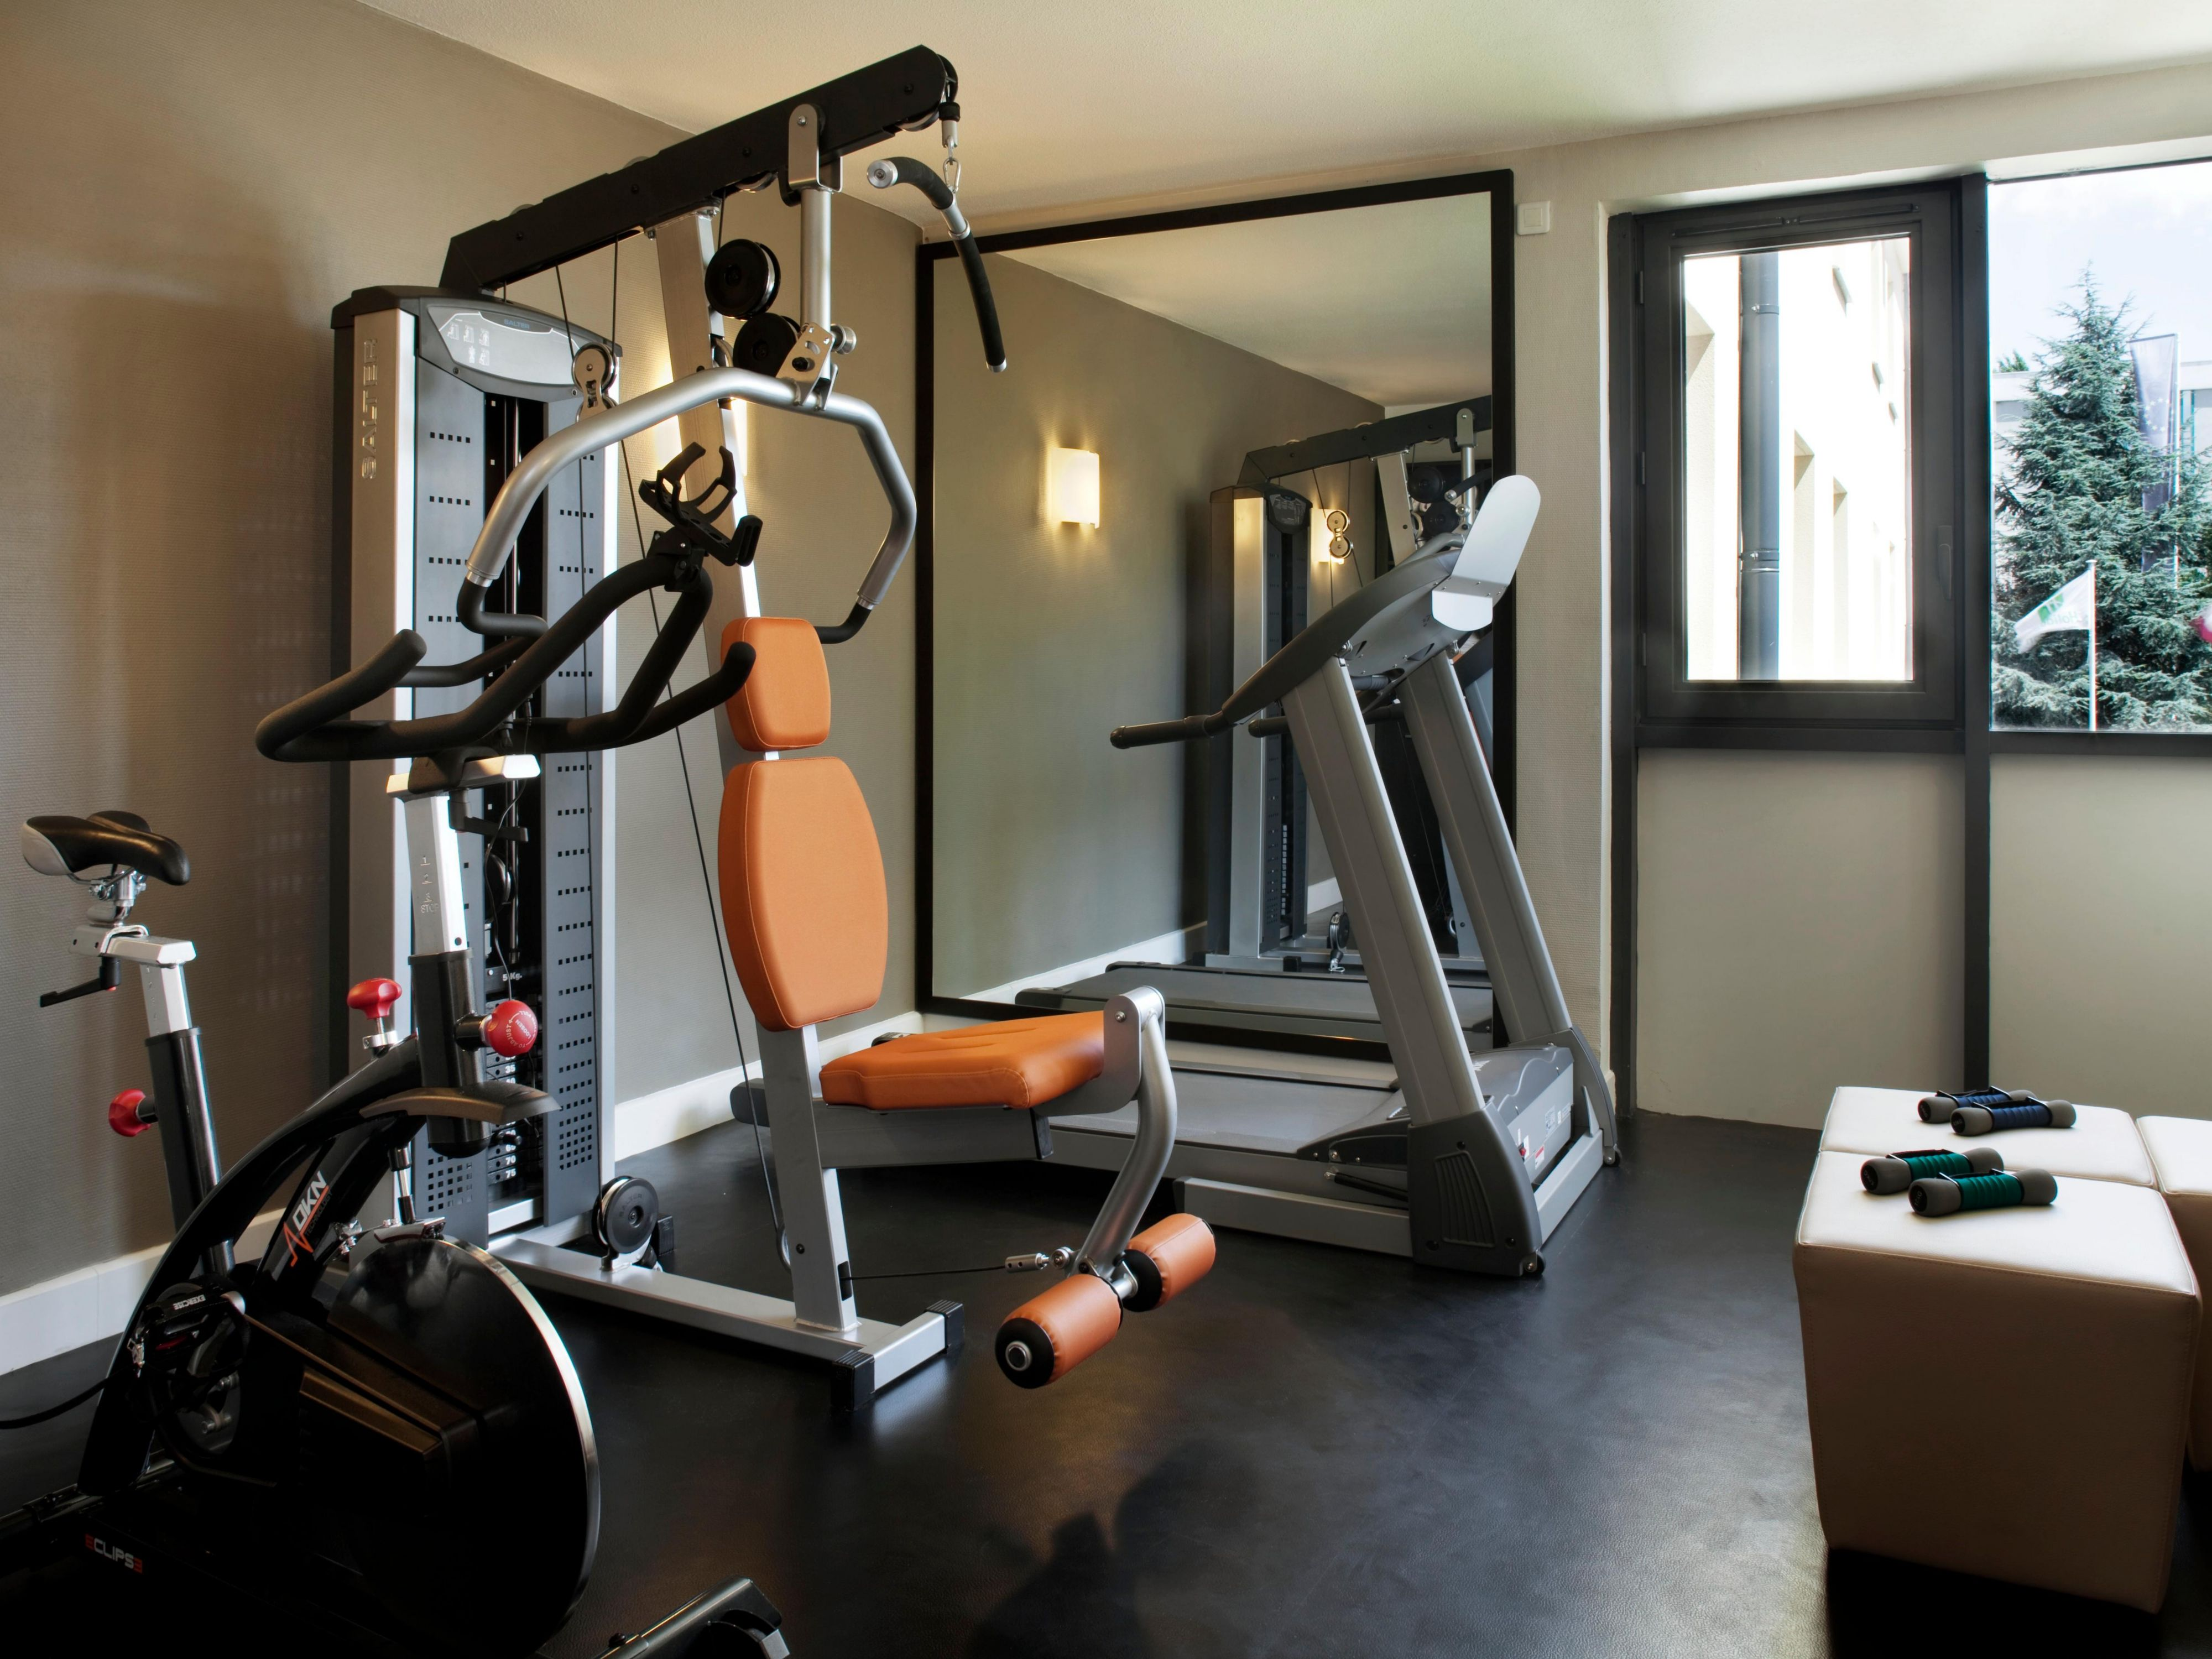 Complimentary mini gym with 3 machines